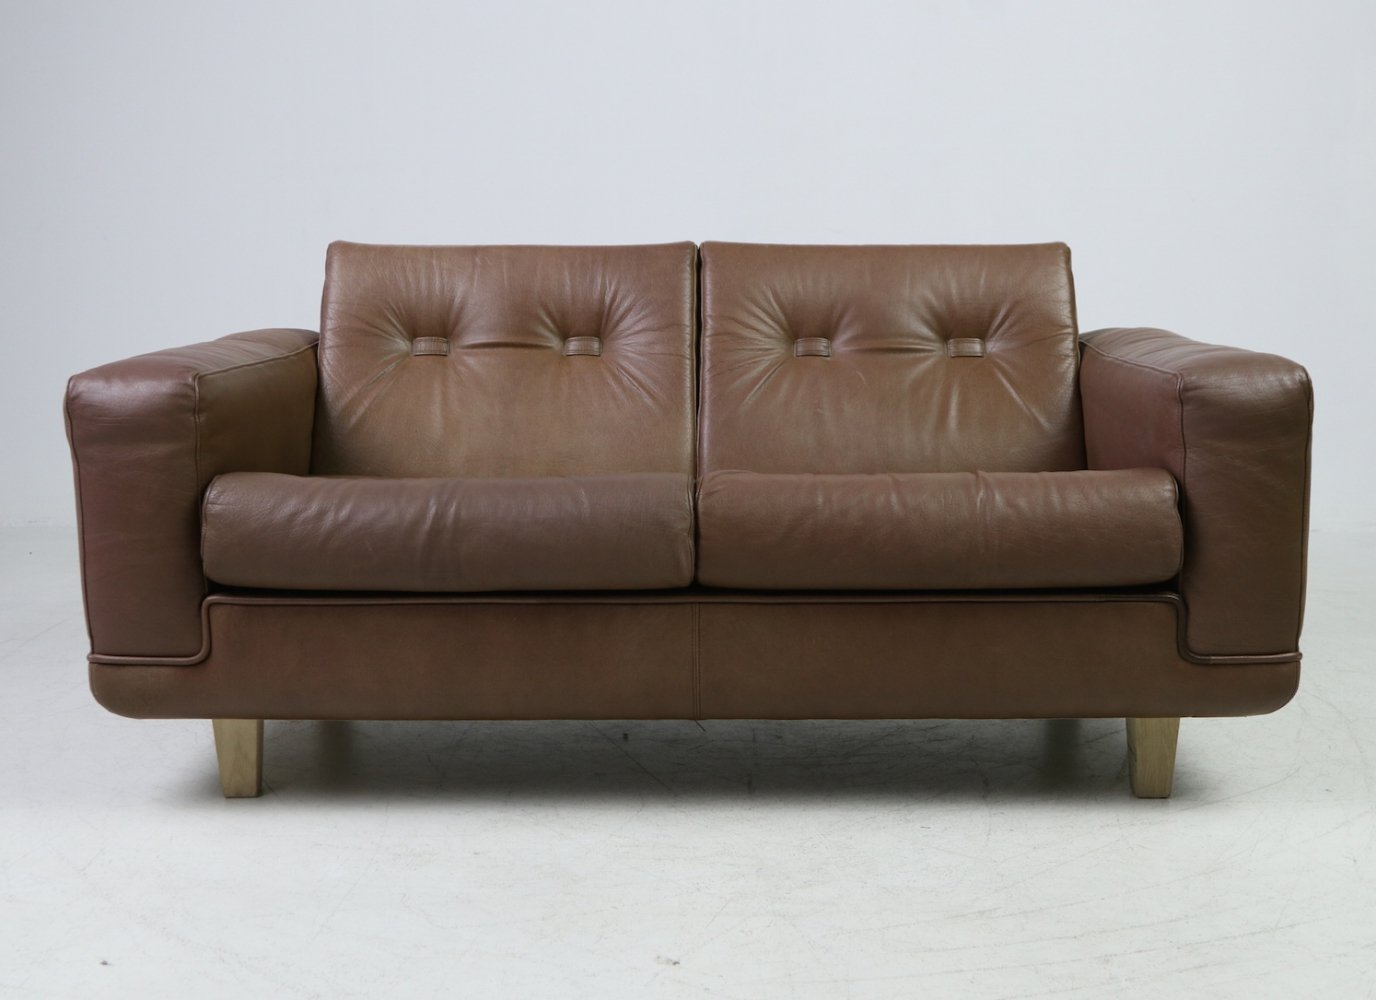 Vintage 2-seater sofa in brown leather by Søren Nissen & Ebbe Gehl, 1970s